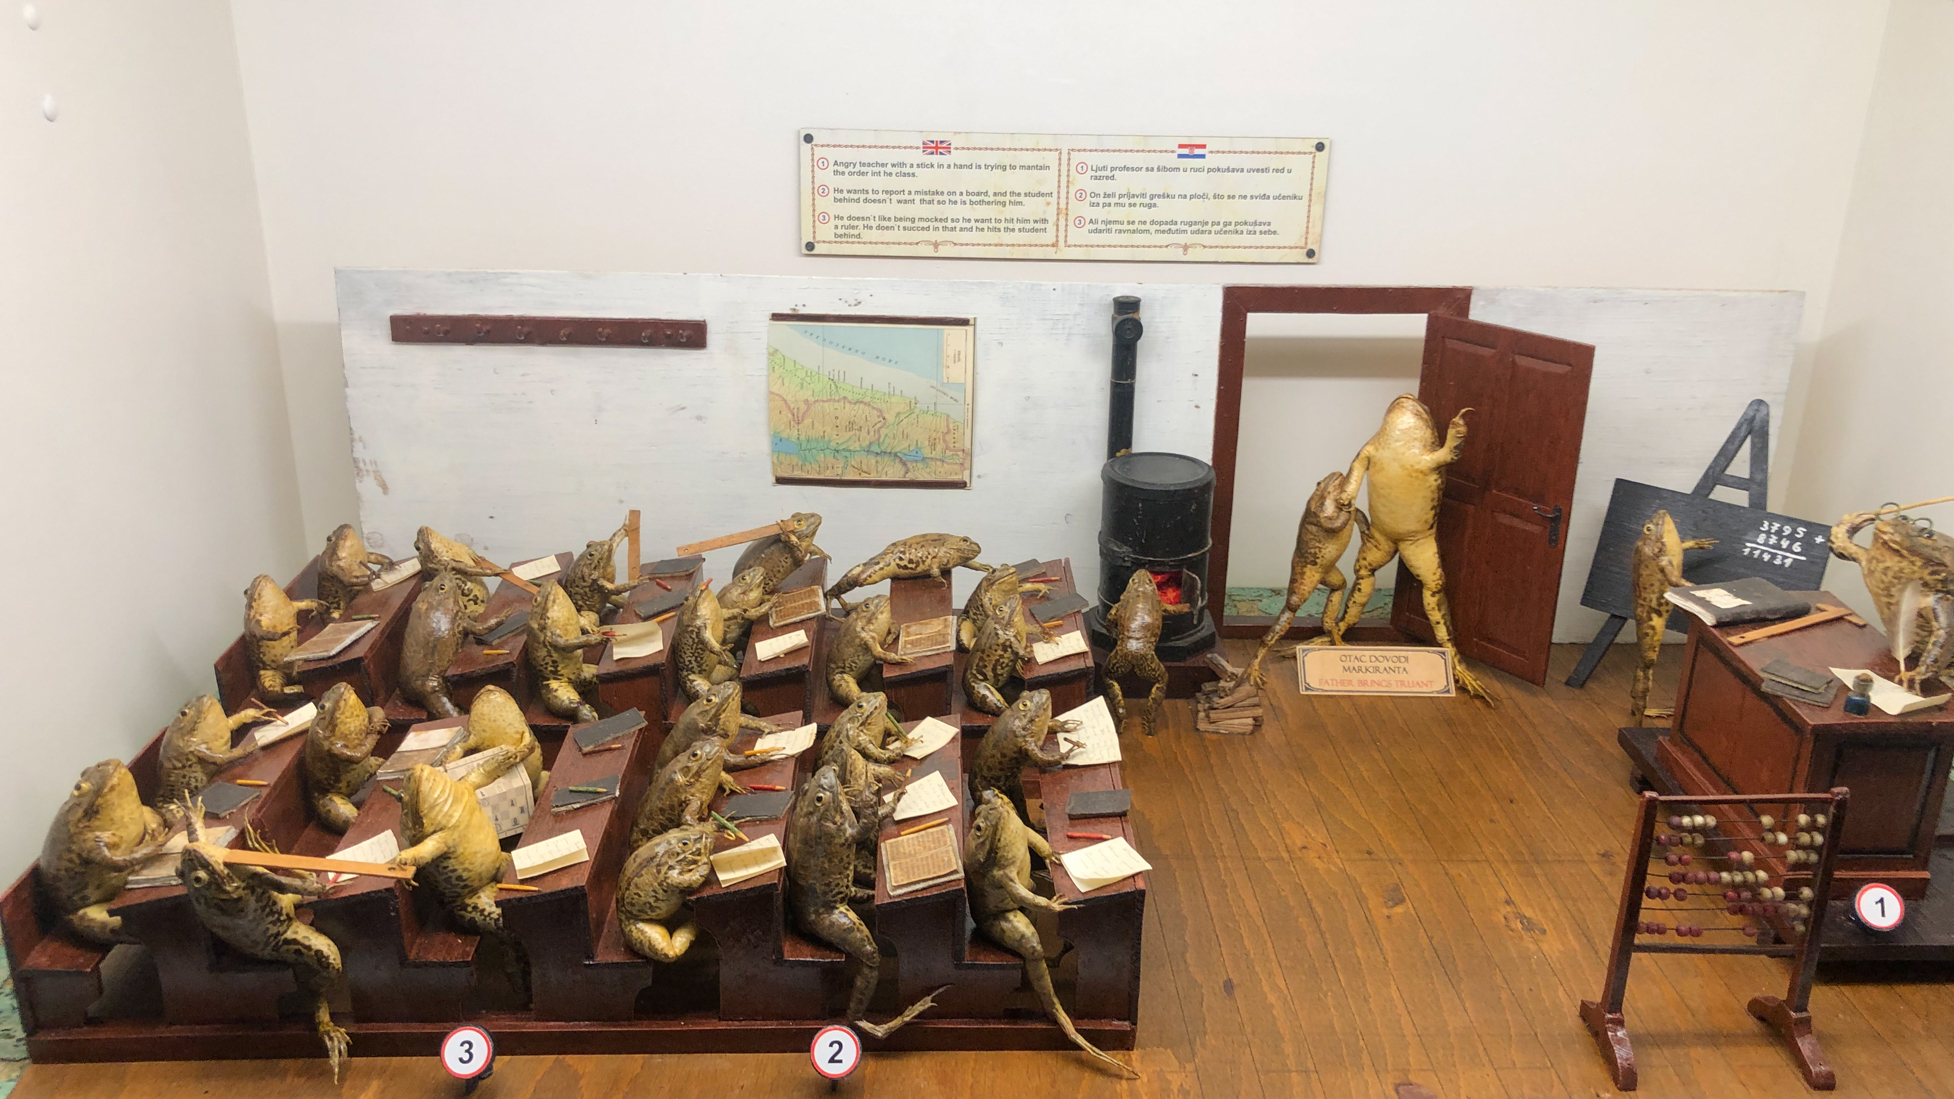 A Froggyland diorama shows a teacher trying to control a class in which students are hitting each other with rulers, arriving late to class and balancing pencils on their noses. Each  diorama displays anthropomorphized frogs in human scenes of the early 20th century.